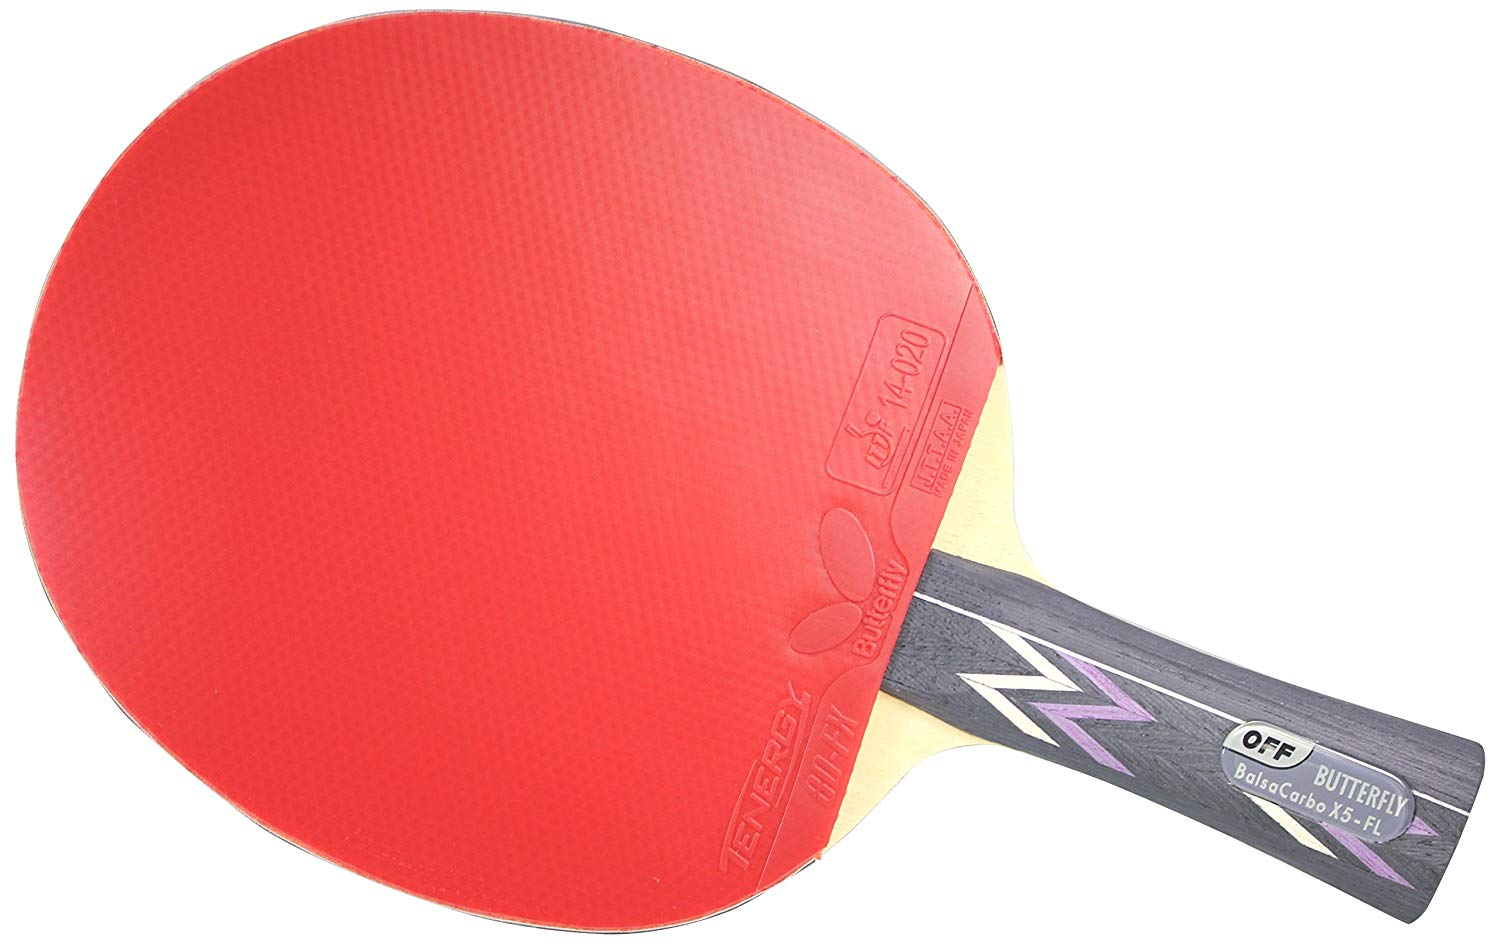 5 Best Ping Pong Paddles For Spin Certified Rackets Reviewed